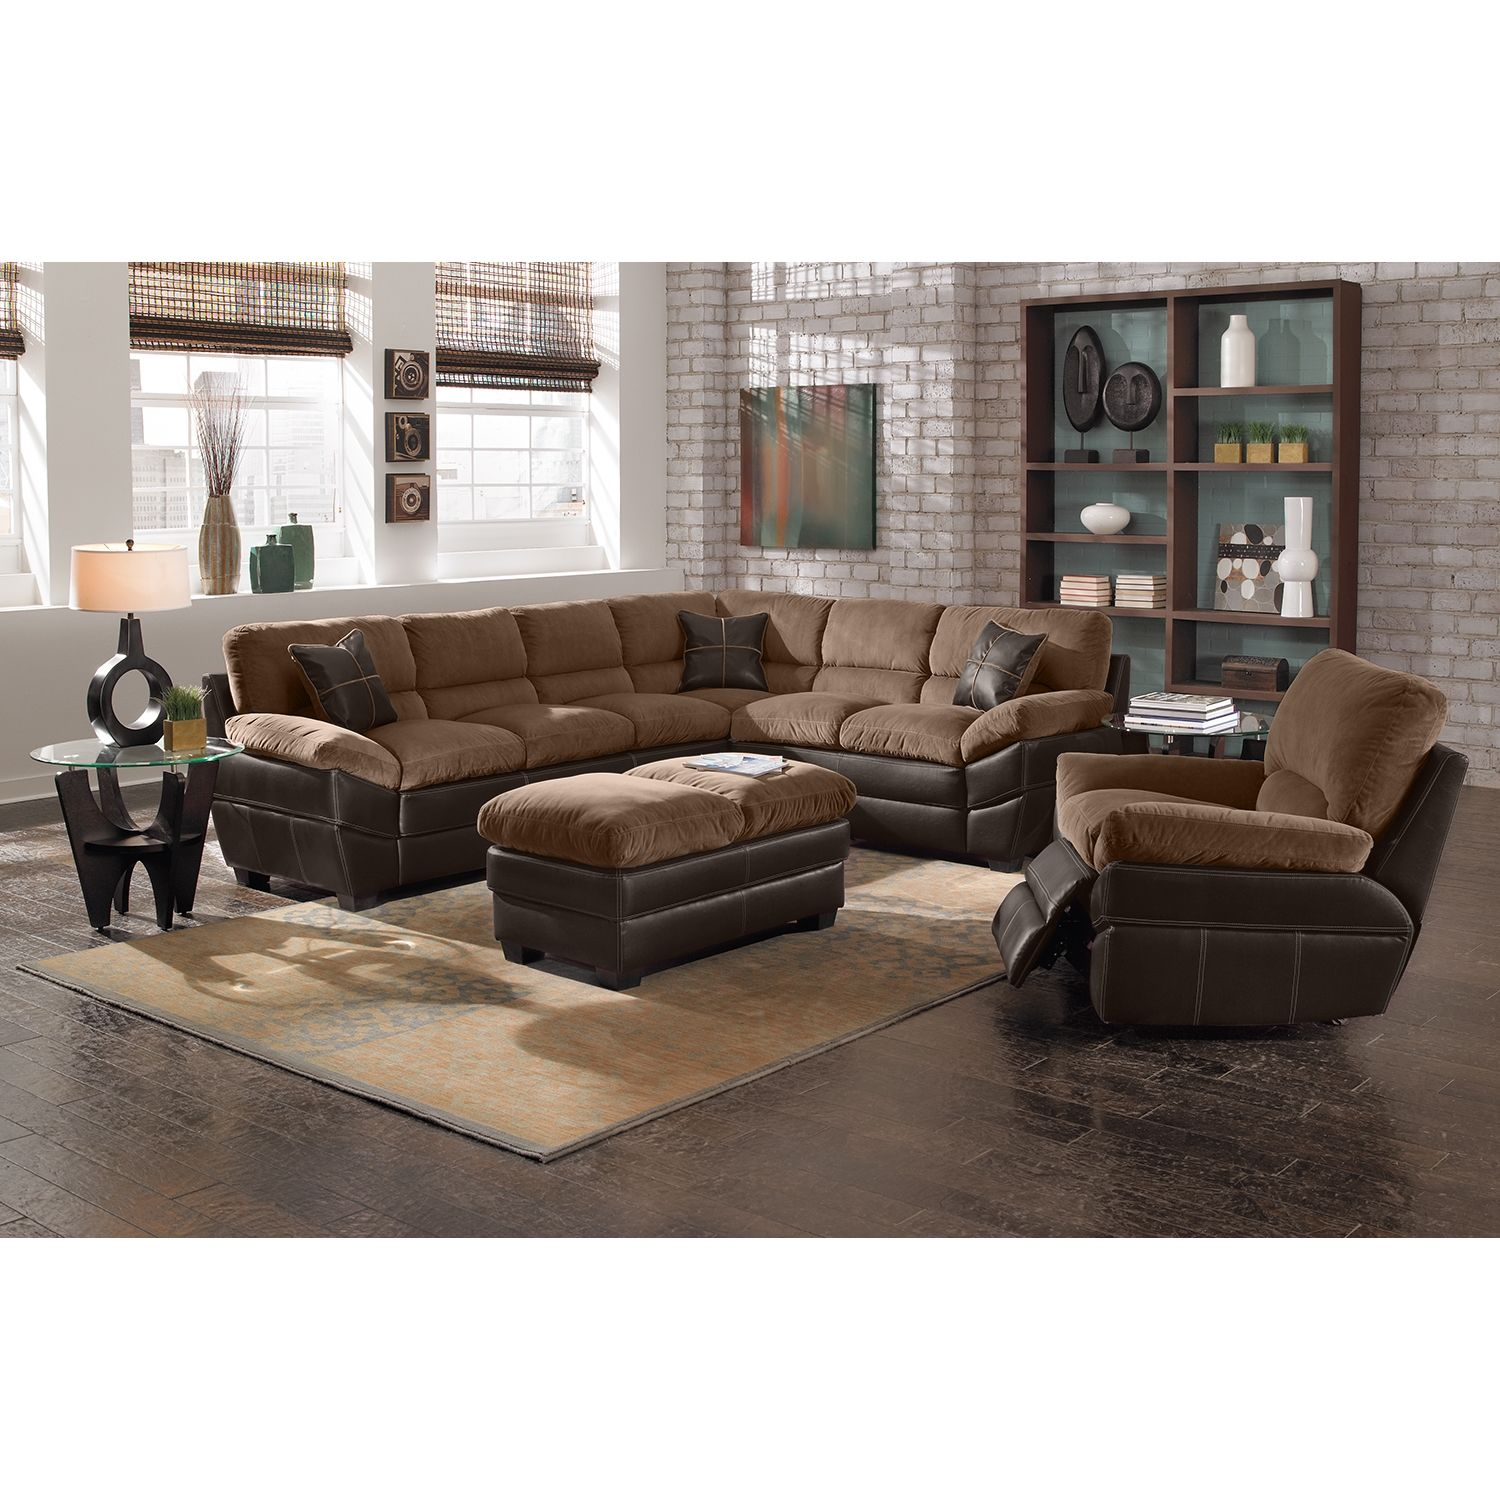 Chandler Upholstery 2 Pc Sectional Value City Furniture